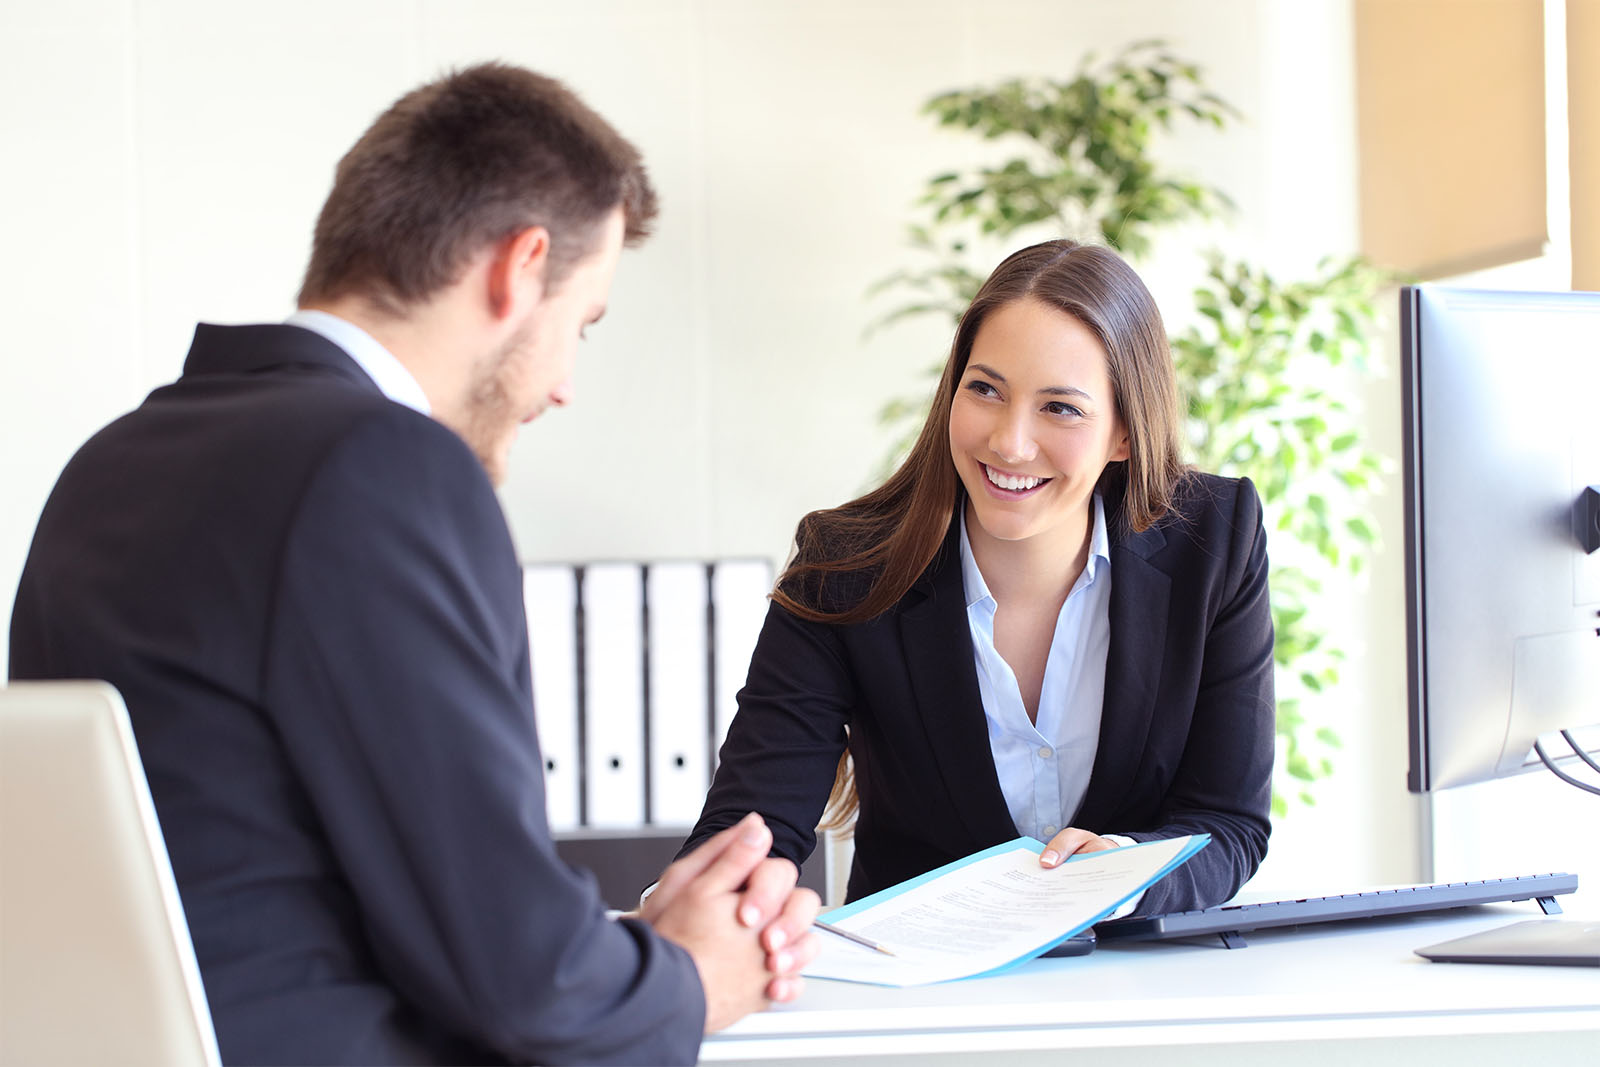 A customer service assistant advising a client at her desk